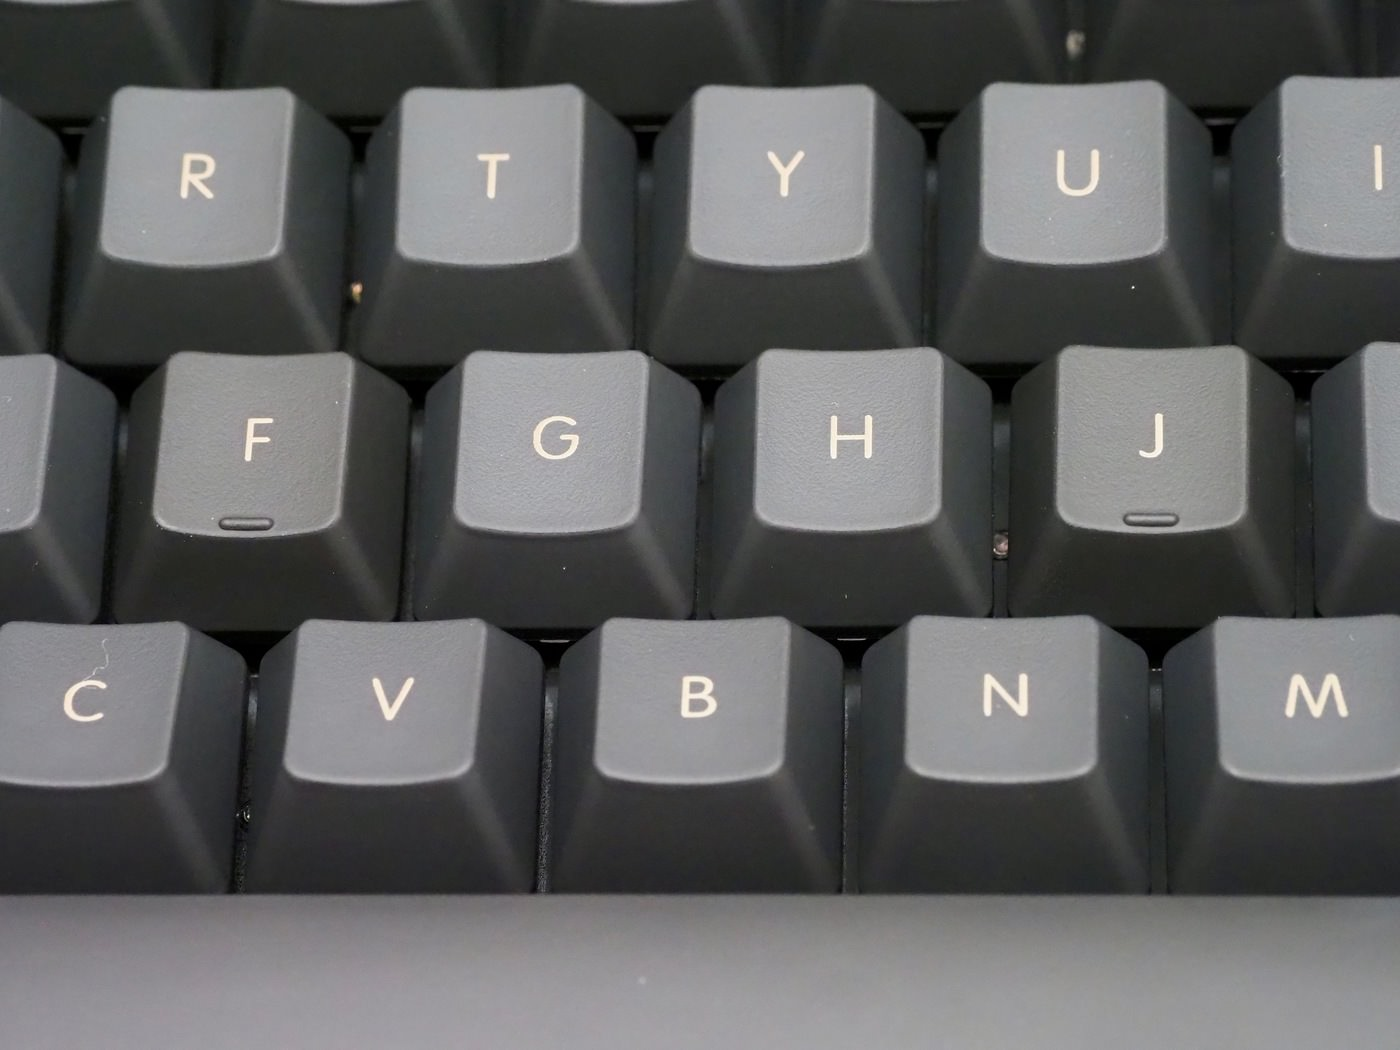 realforce-tkl-for-mac-pfu-limited-edition-review_00013